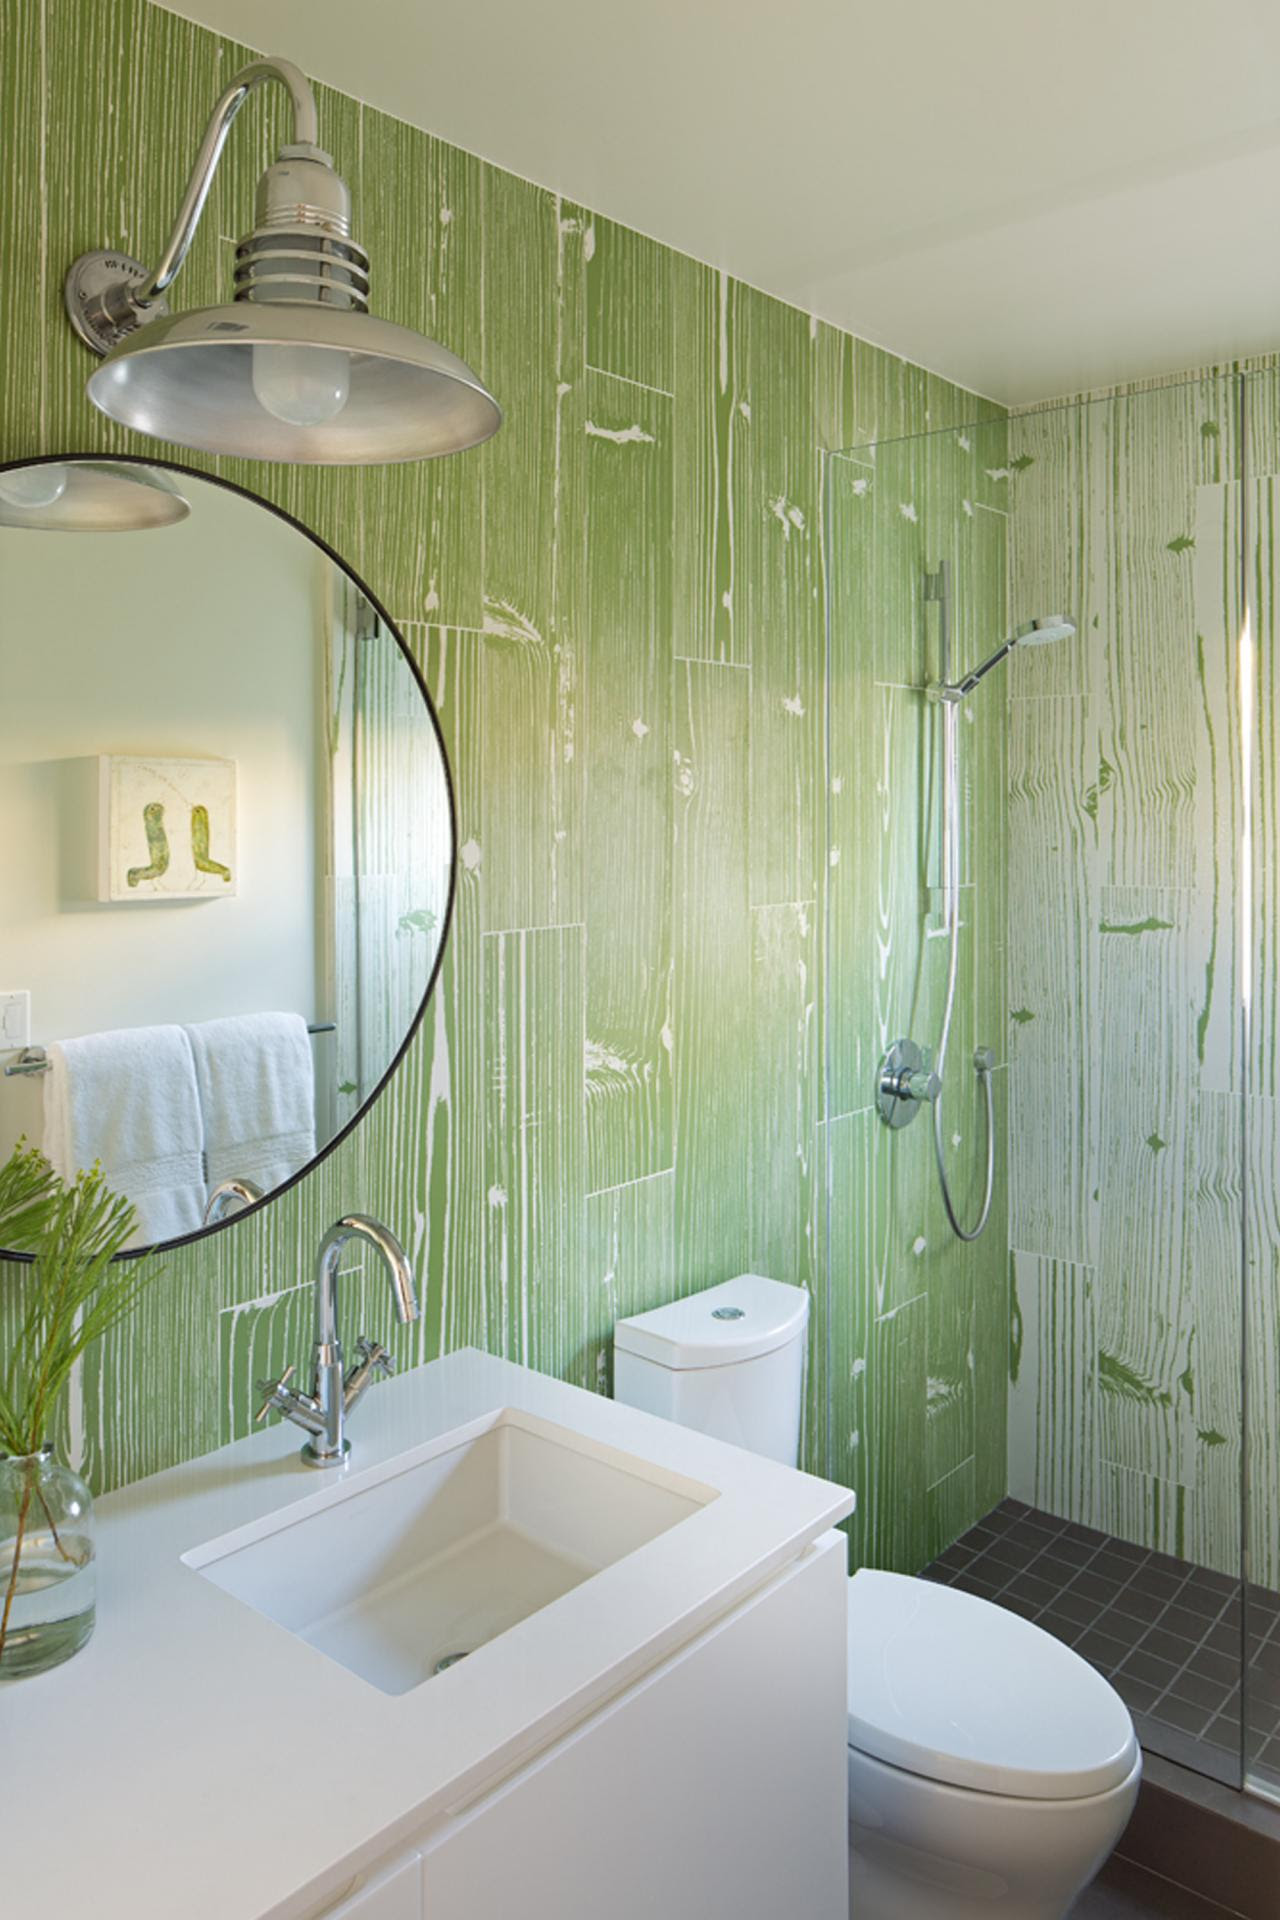 10 Paint Color Ideas for Small Bathrooms | DIY Network ...